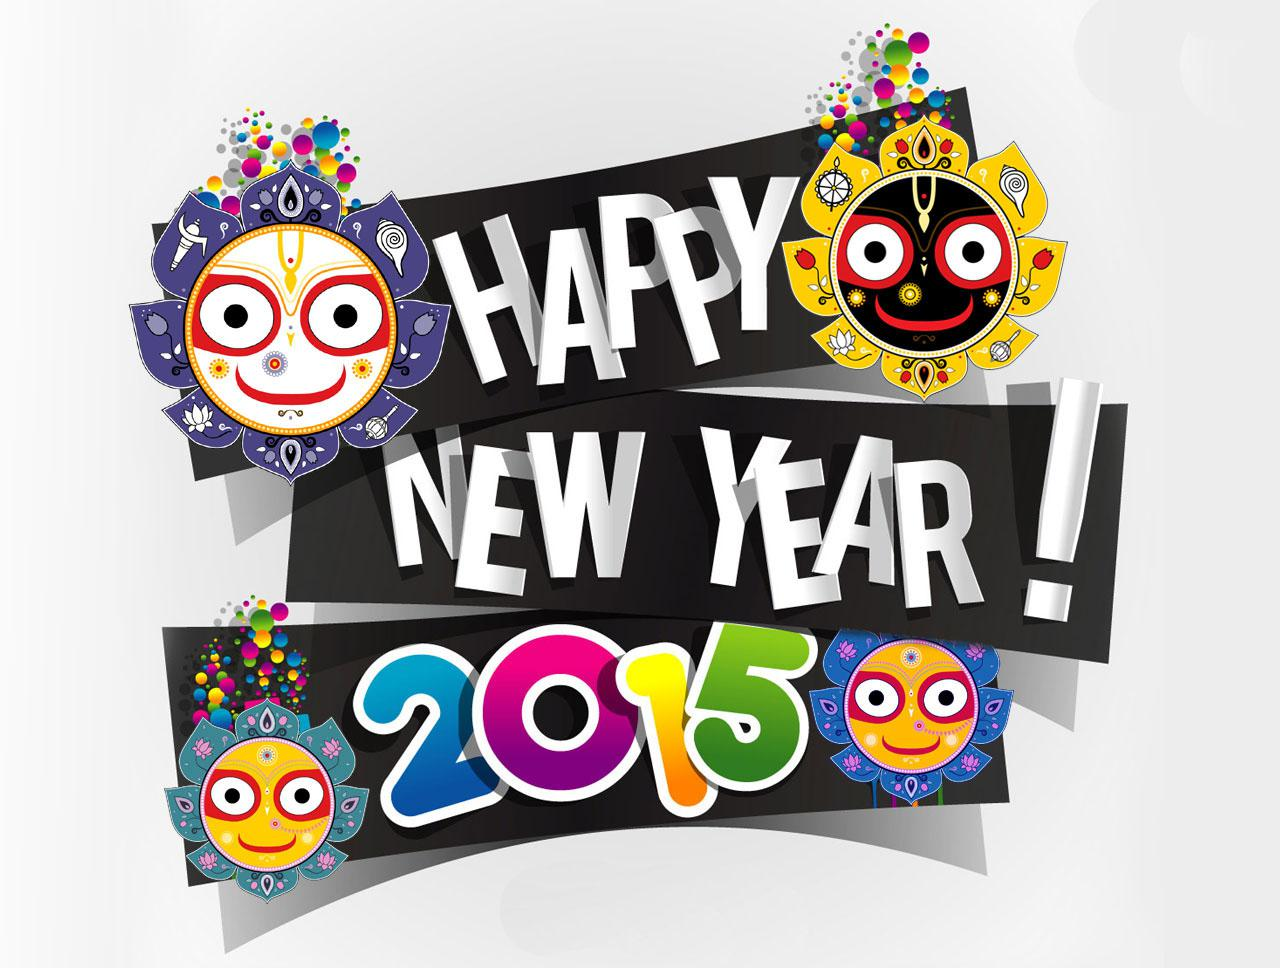 Festival clipart new year's Year New For Download Happy